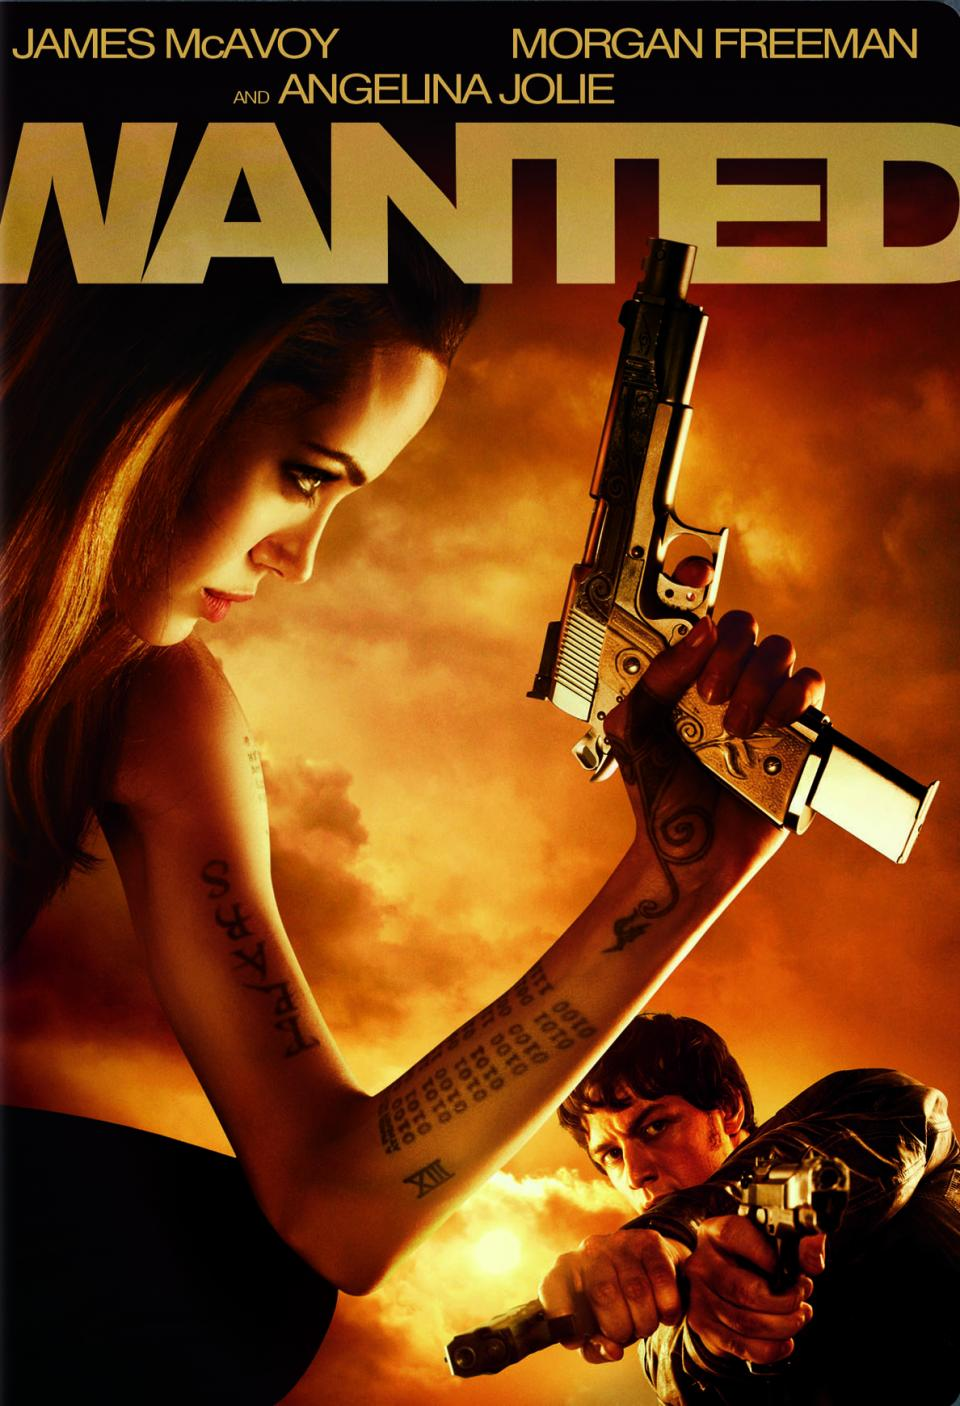 wanted (2008 film)